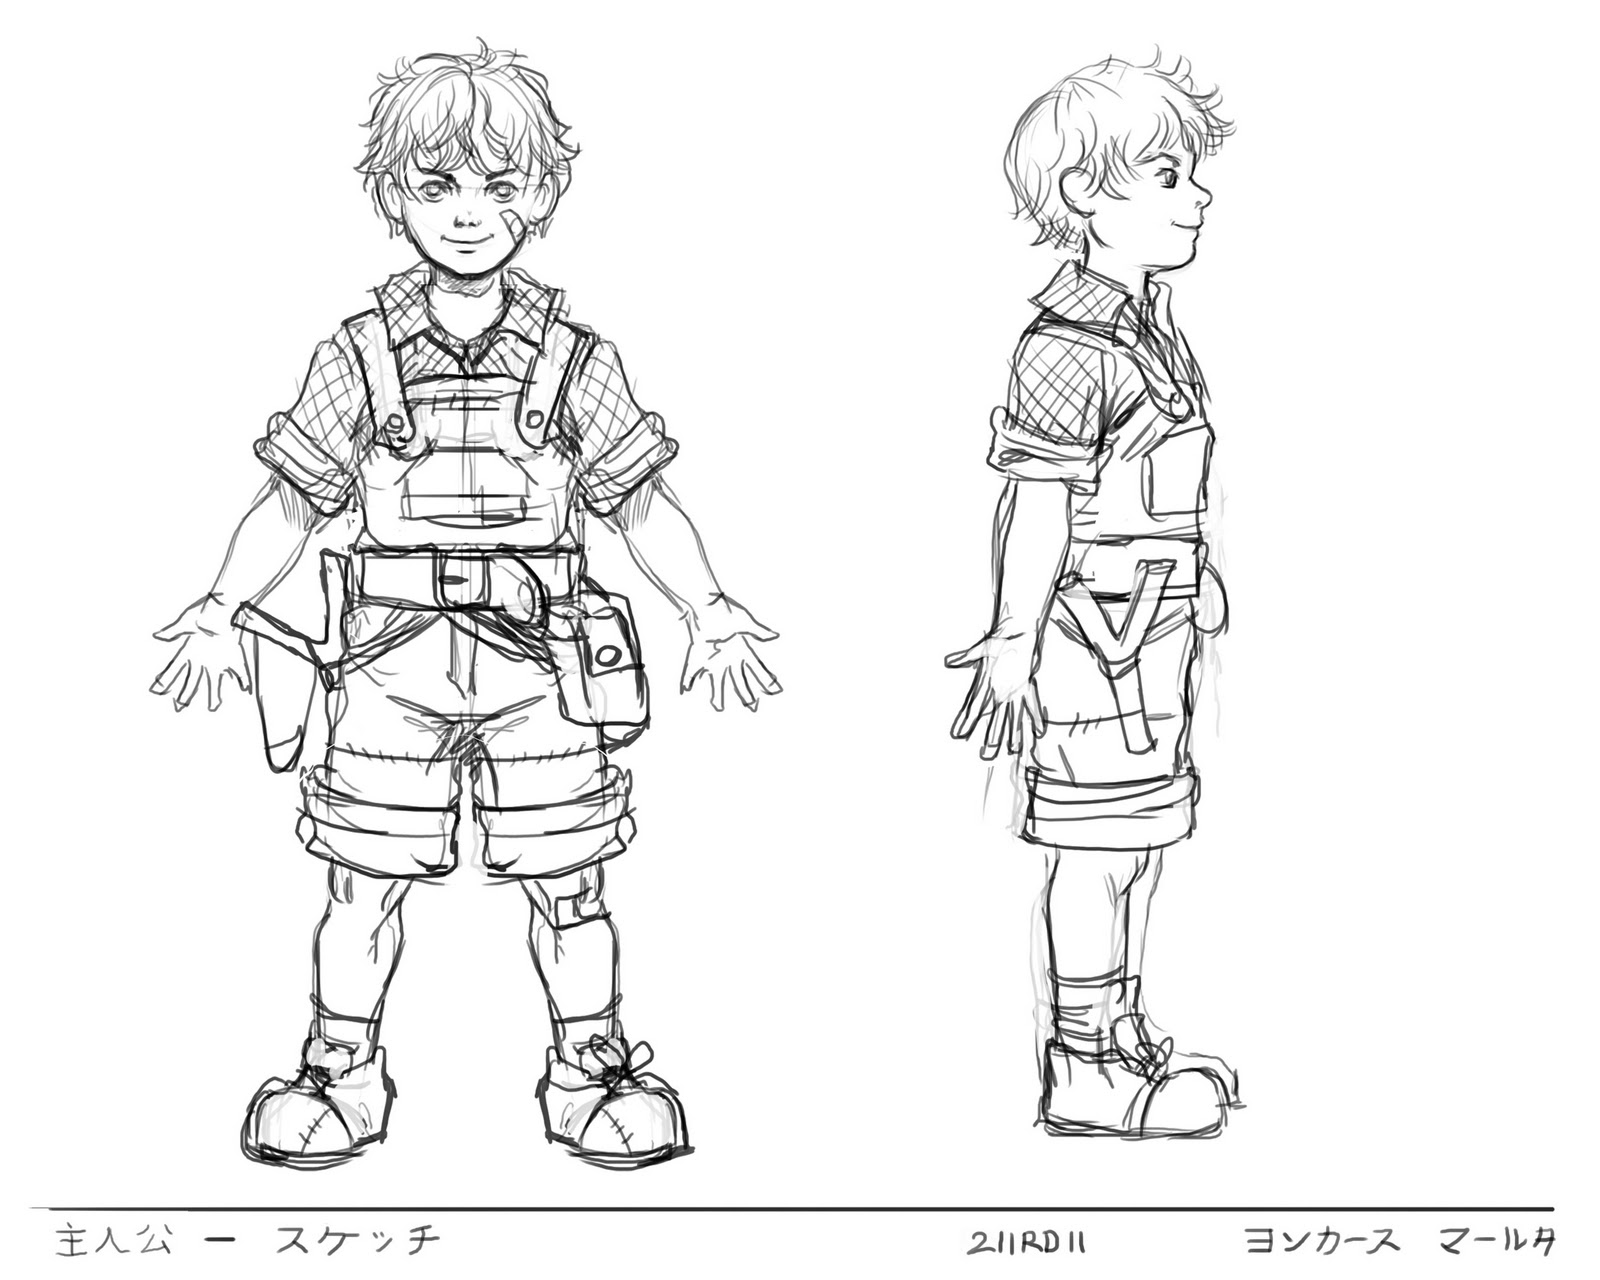 characters drawings marthe sketches game character design class characters drawings